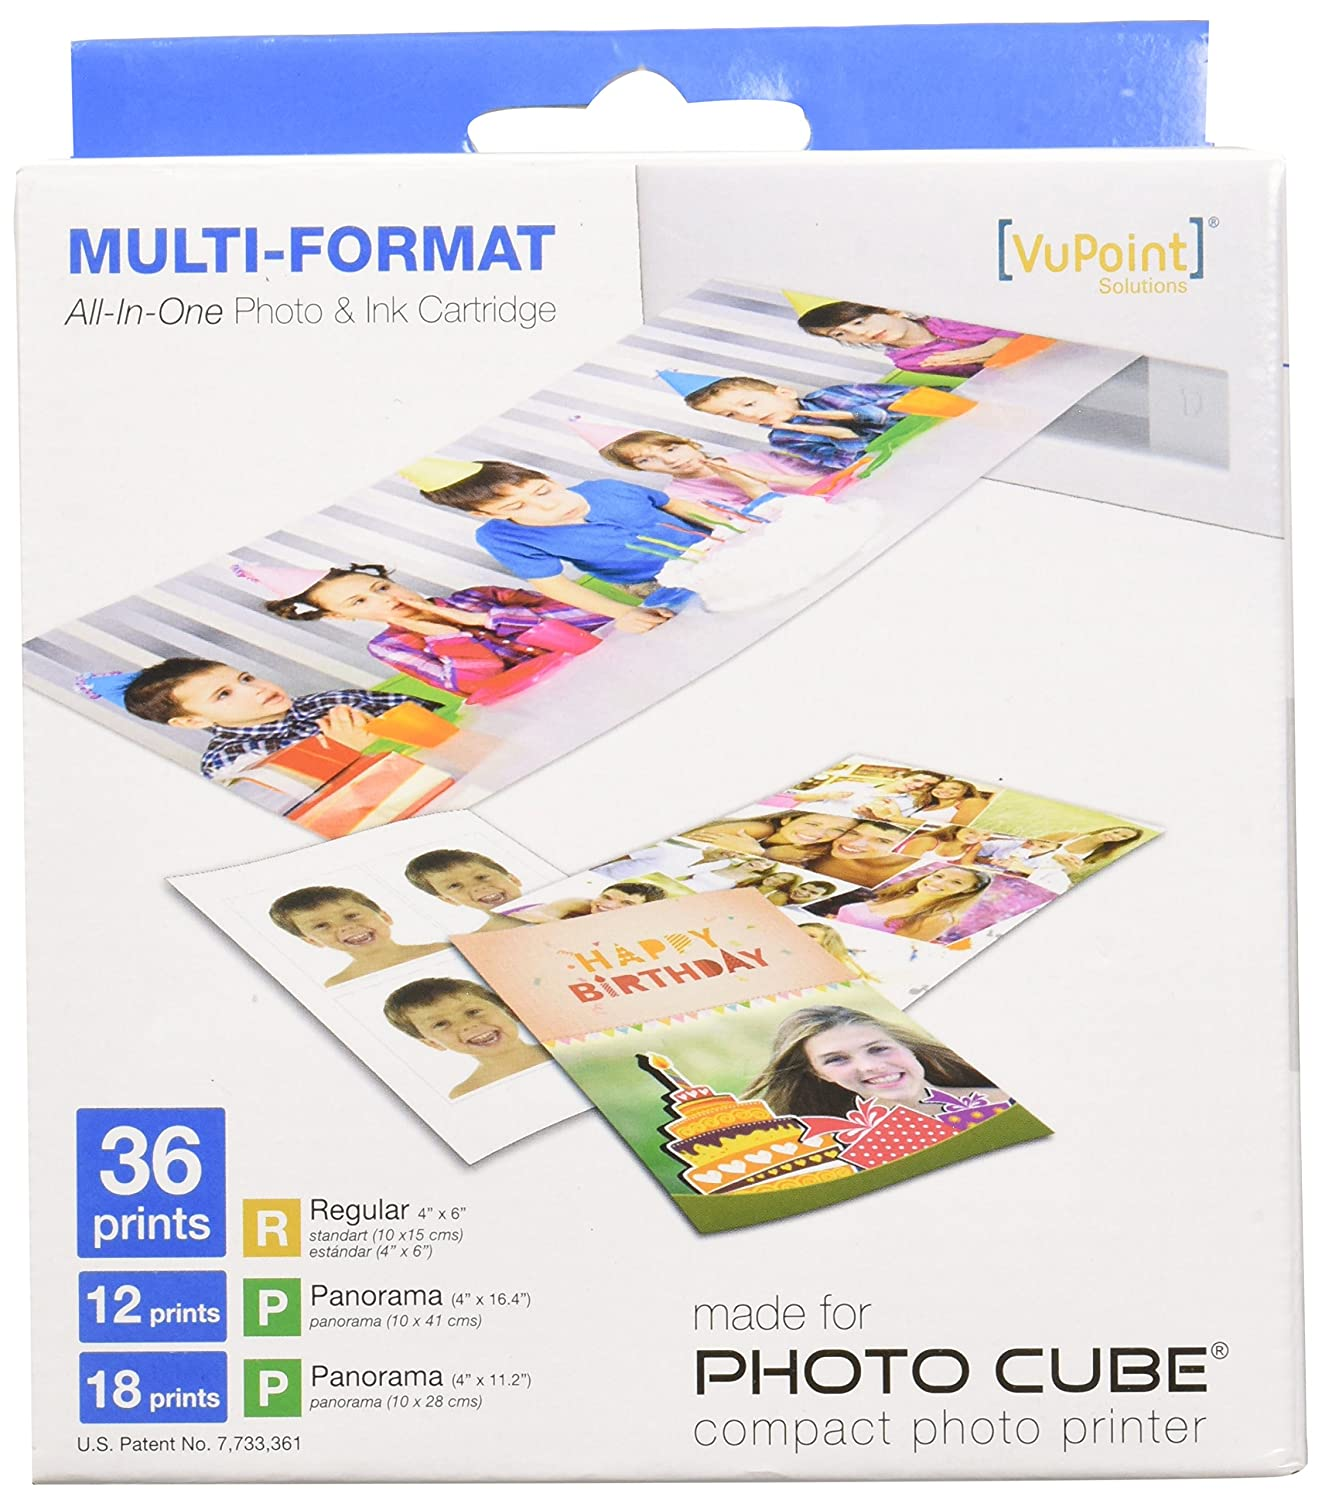 Amazoncom Vupoint Solutions Multi Format All In One Photo And Ink